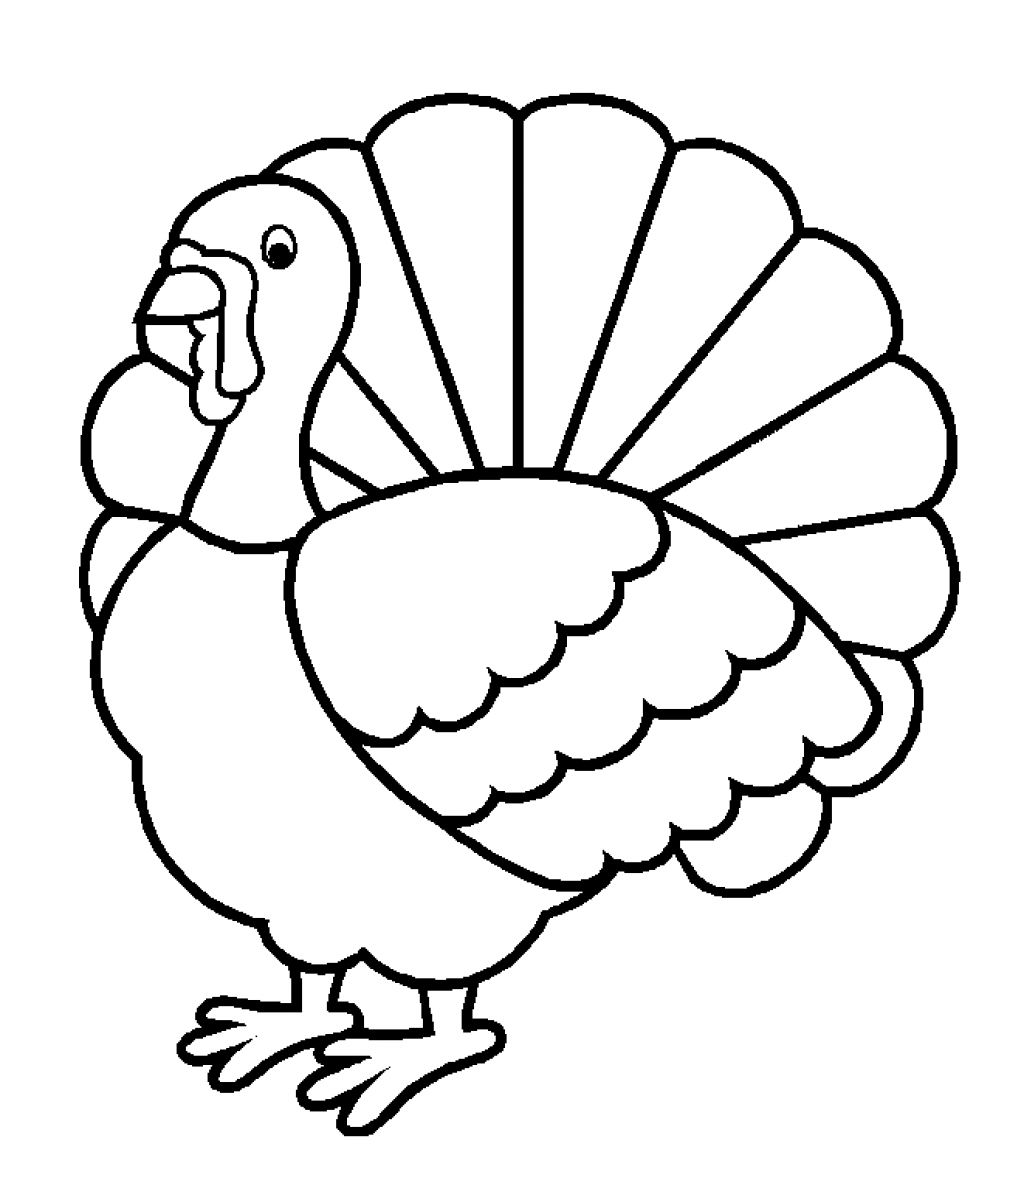 1024x1178 Black And White Turkey Coloring Pages Turkey